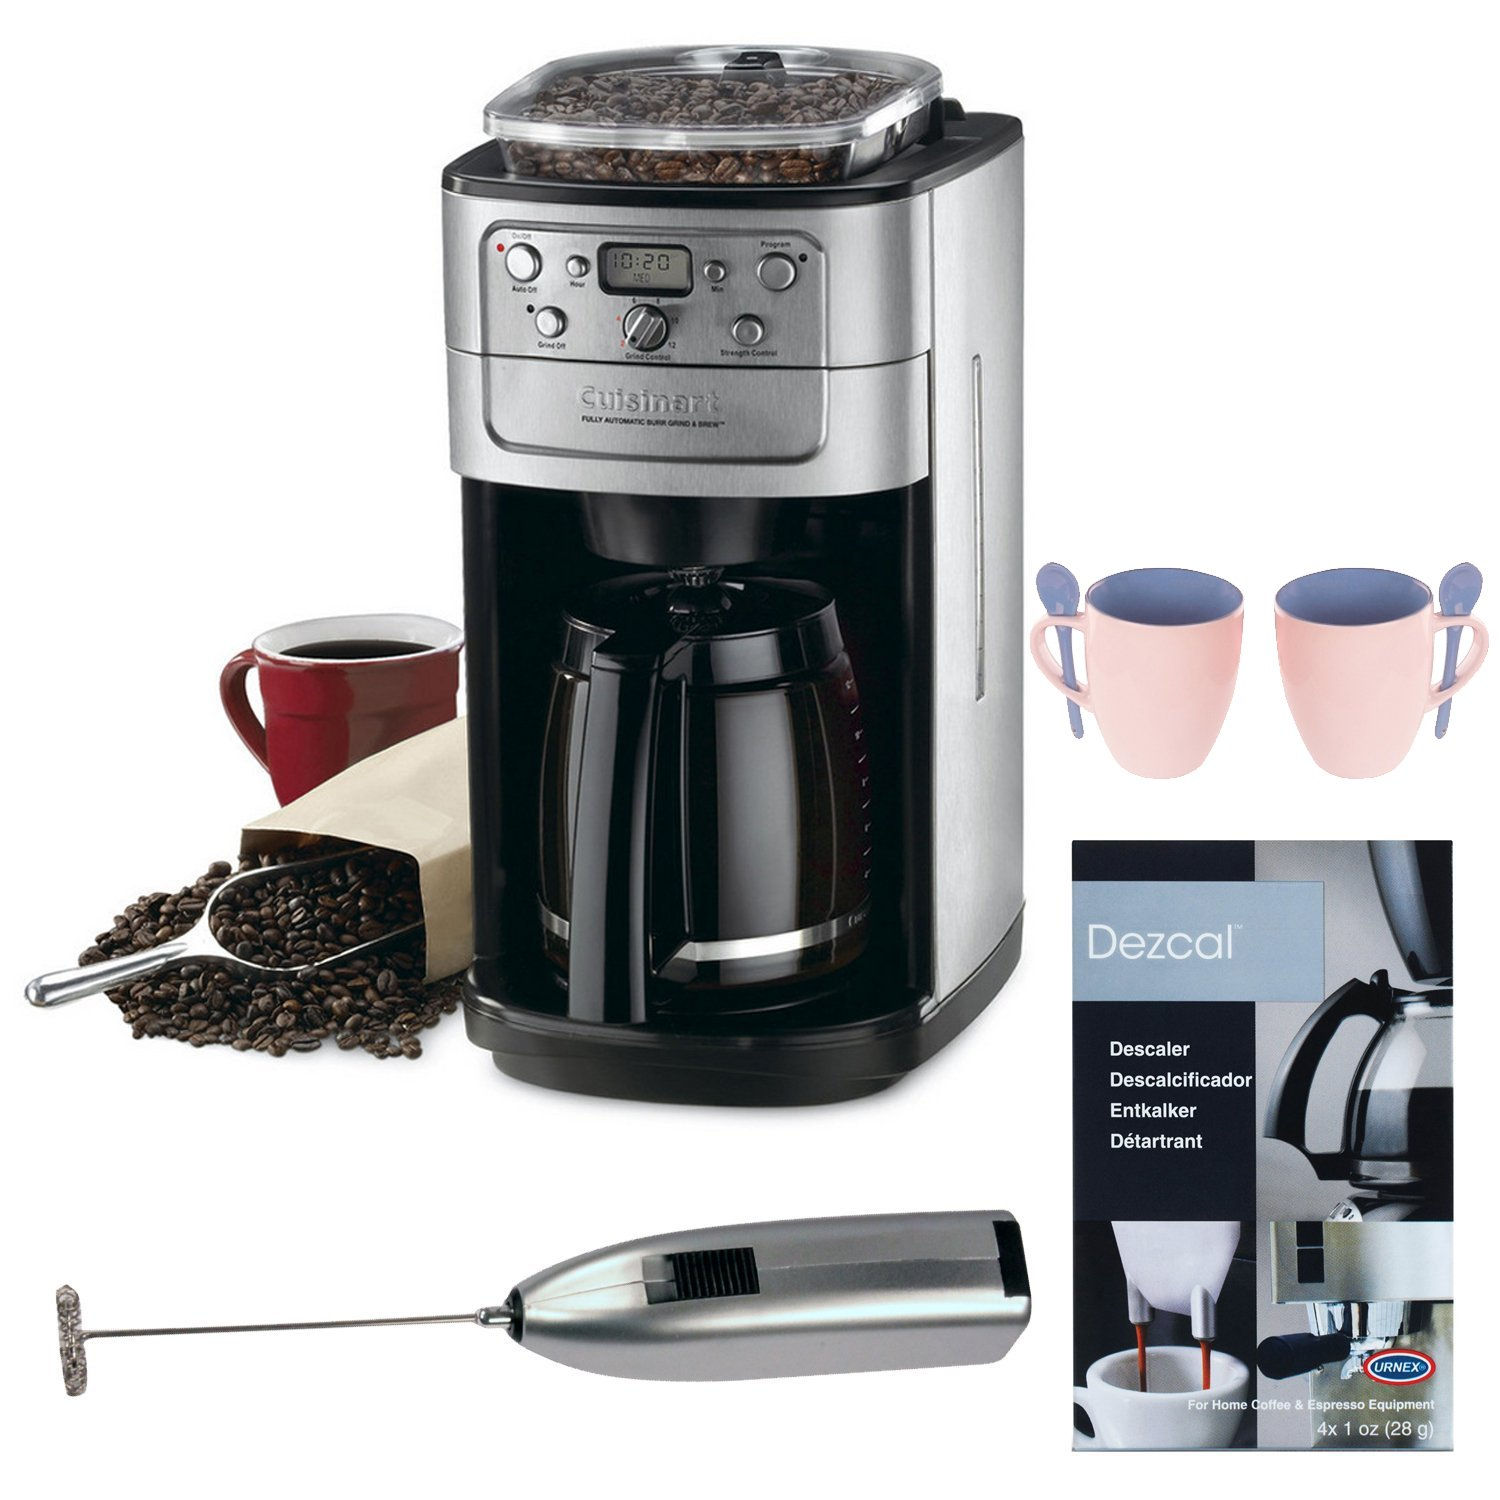 Amazon.com: Cuisinart dgb-700bc grind-and-brew 12-cup ...